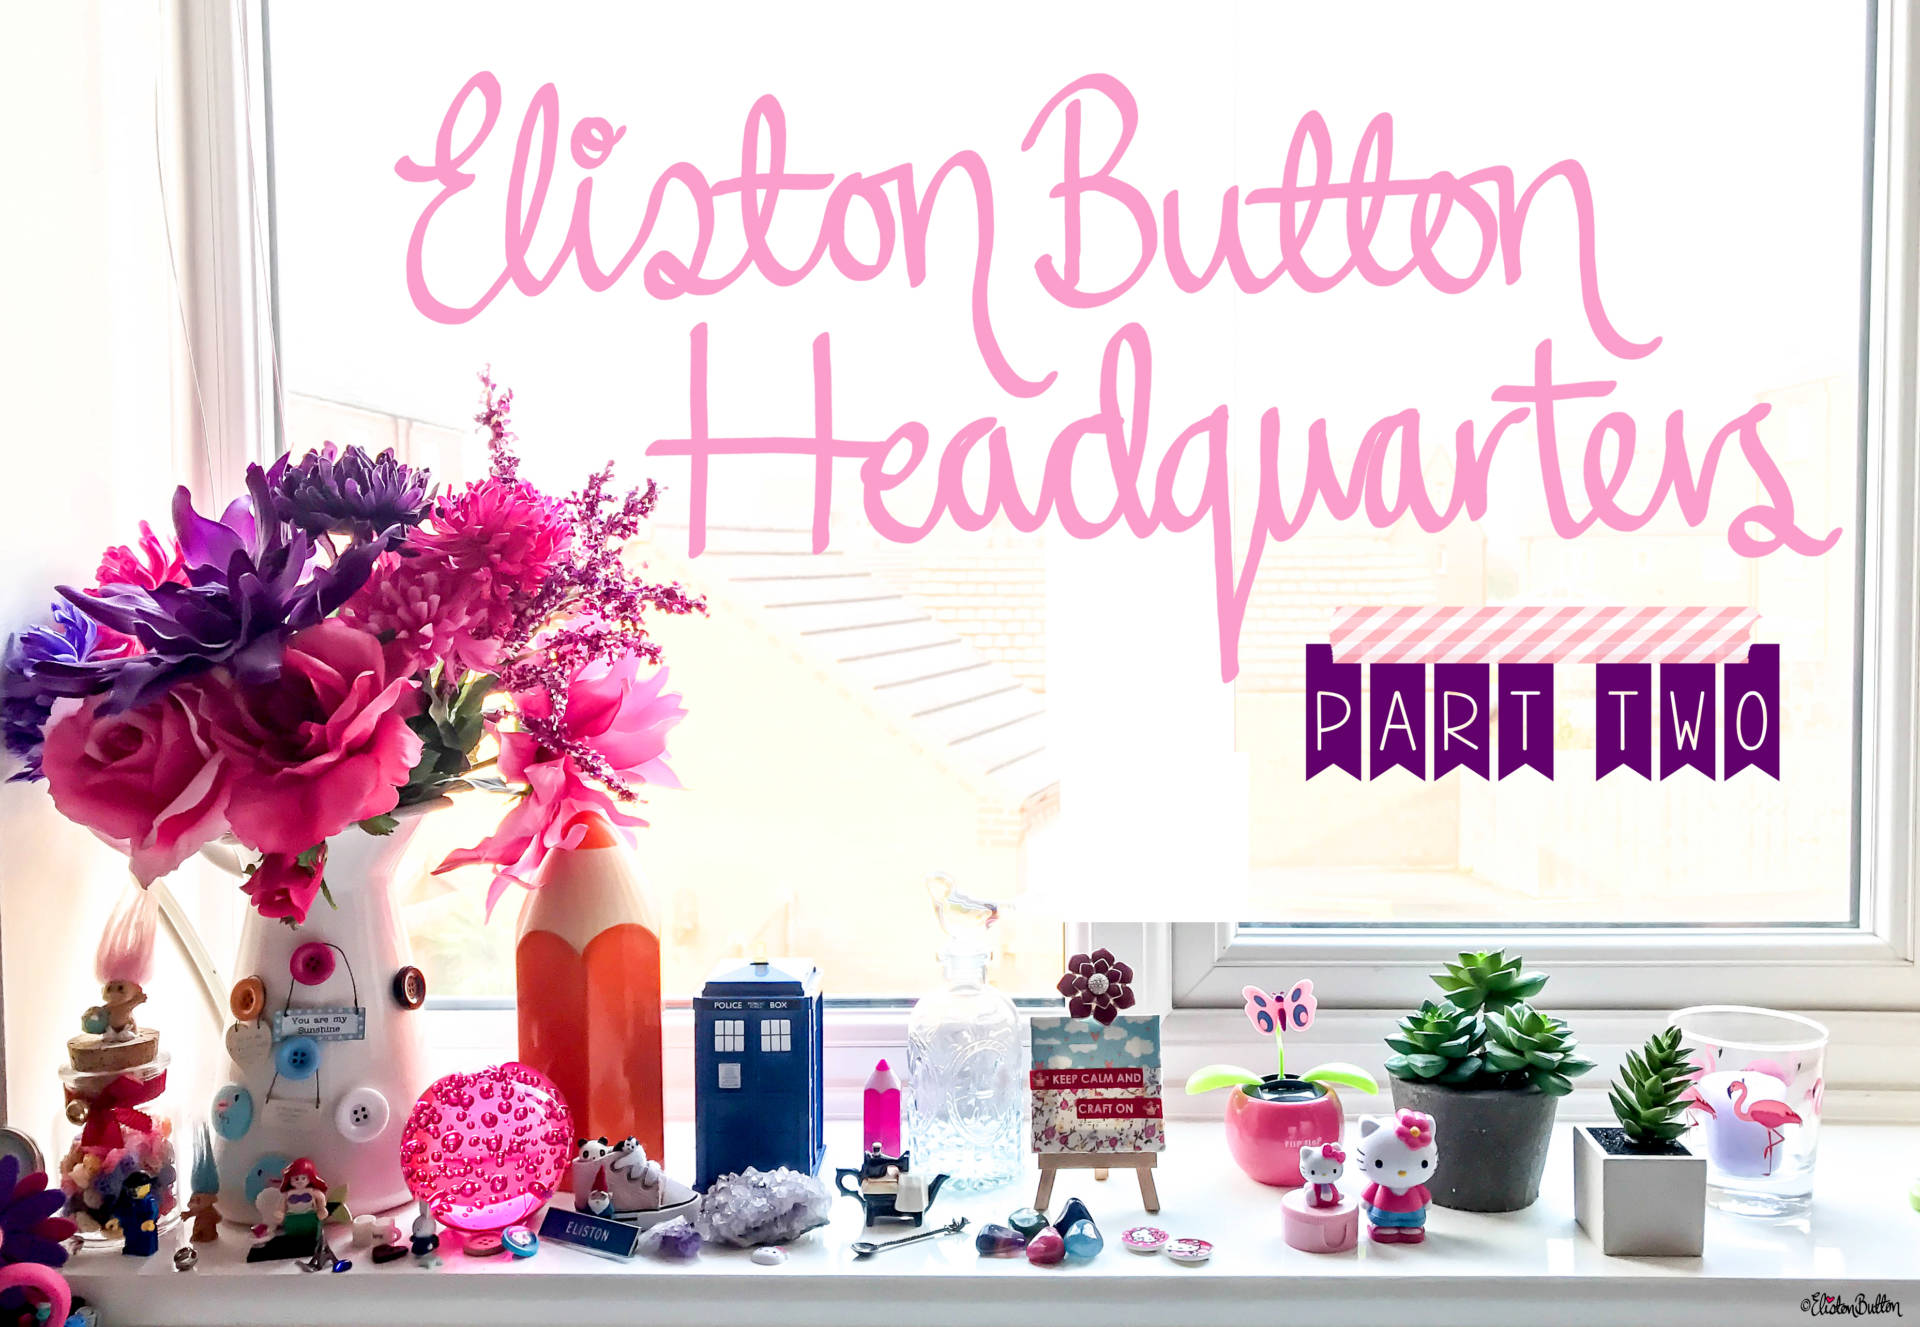 Eliston Button Headquarters - Part Two Title Banner - Eliston Button Headquarters – Part Two at www.elistonbutton.com - Eliston Button - That Crafty Kid – Art, Design, Craft & Adventure.